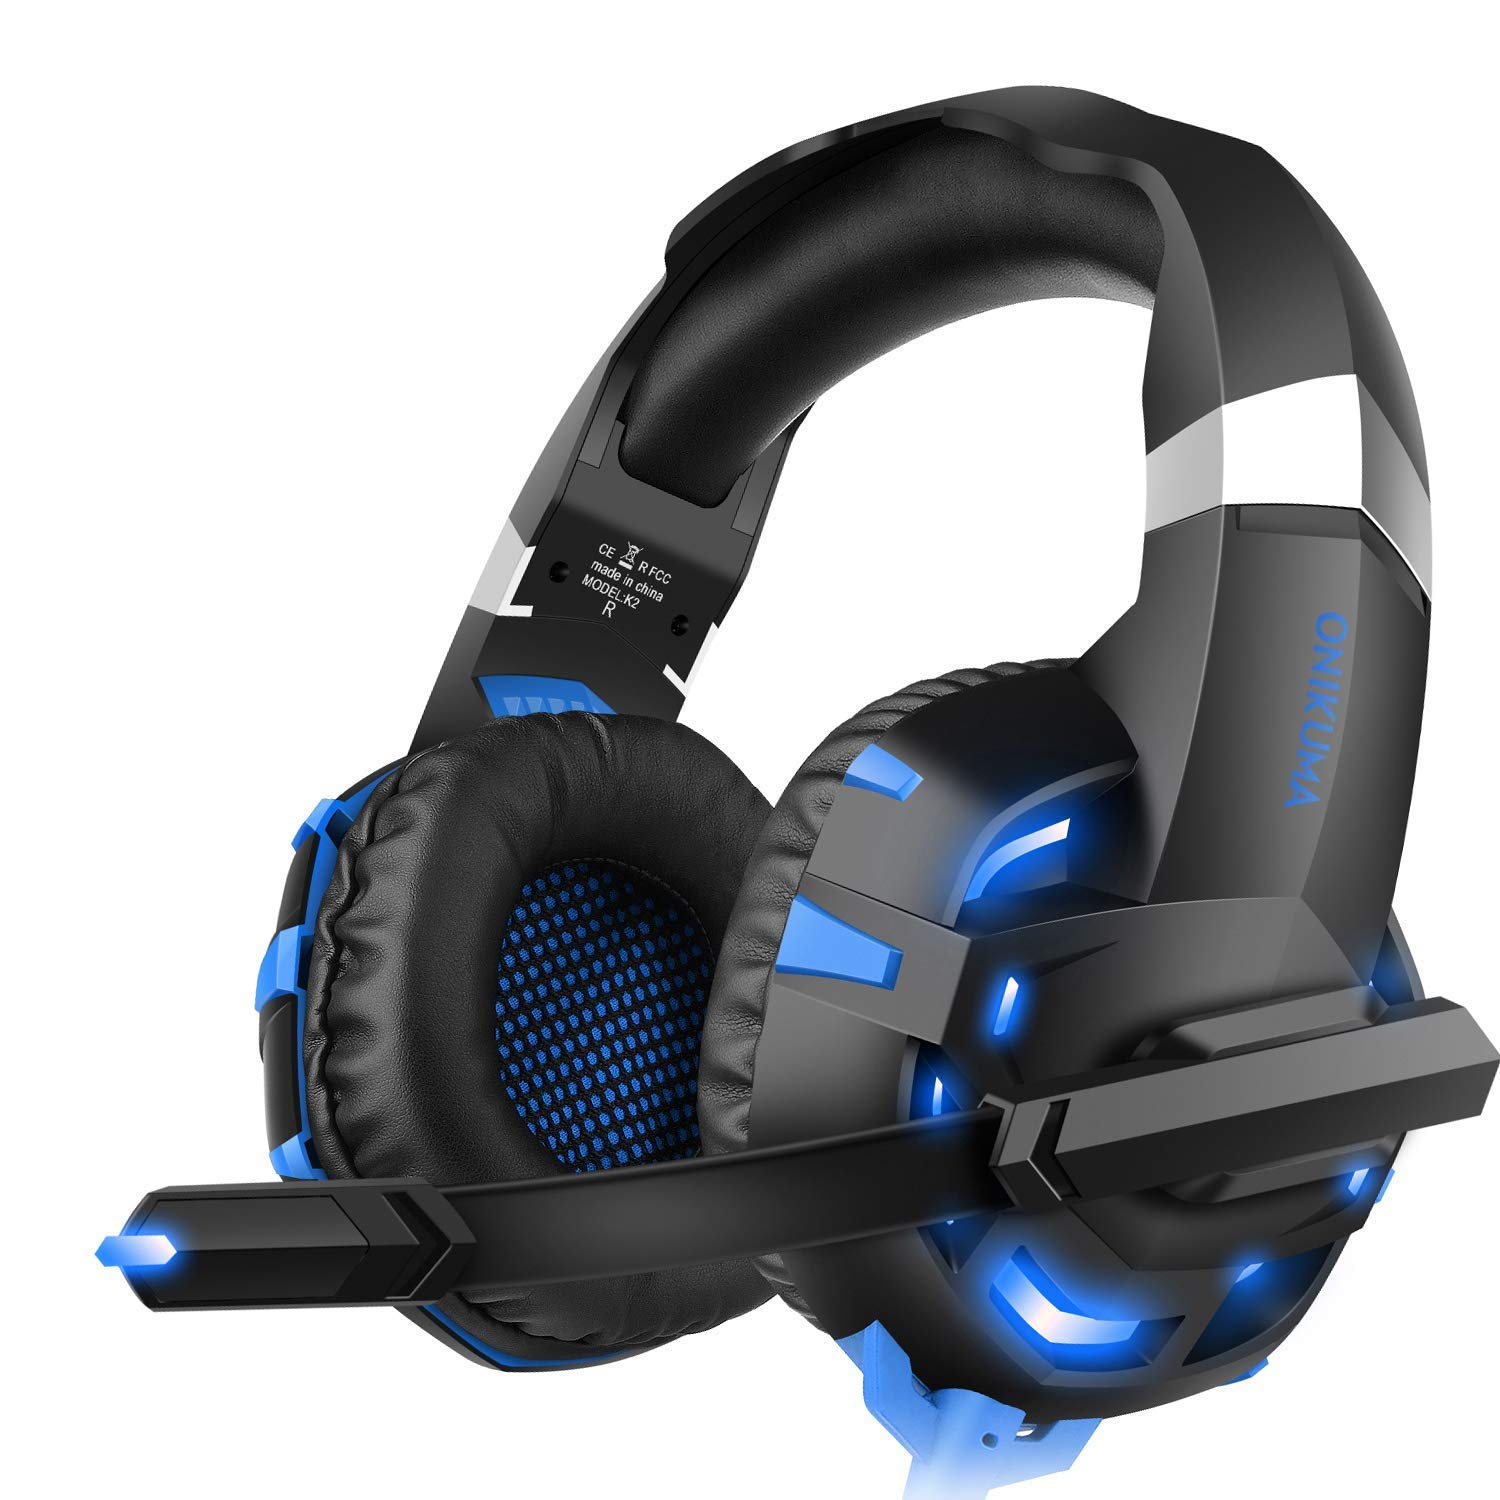 WILLNORN Gaming Headset with Mic for Xbox One, PS4, Smart Phone, Laptops,Nintendo Switch, Noise Reduction Game Earphone